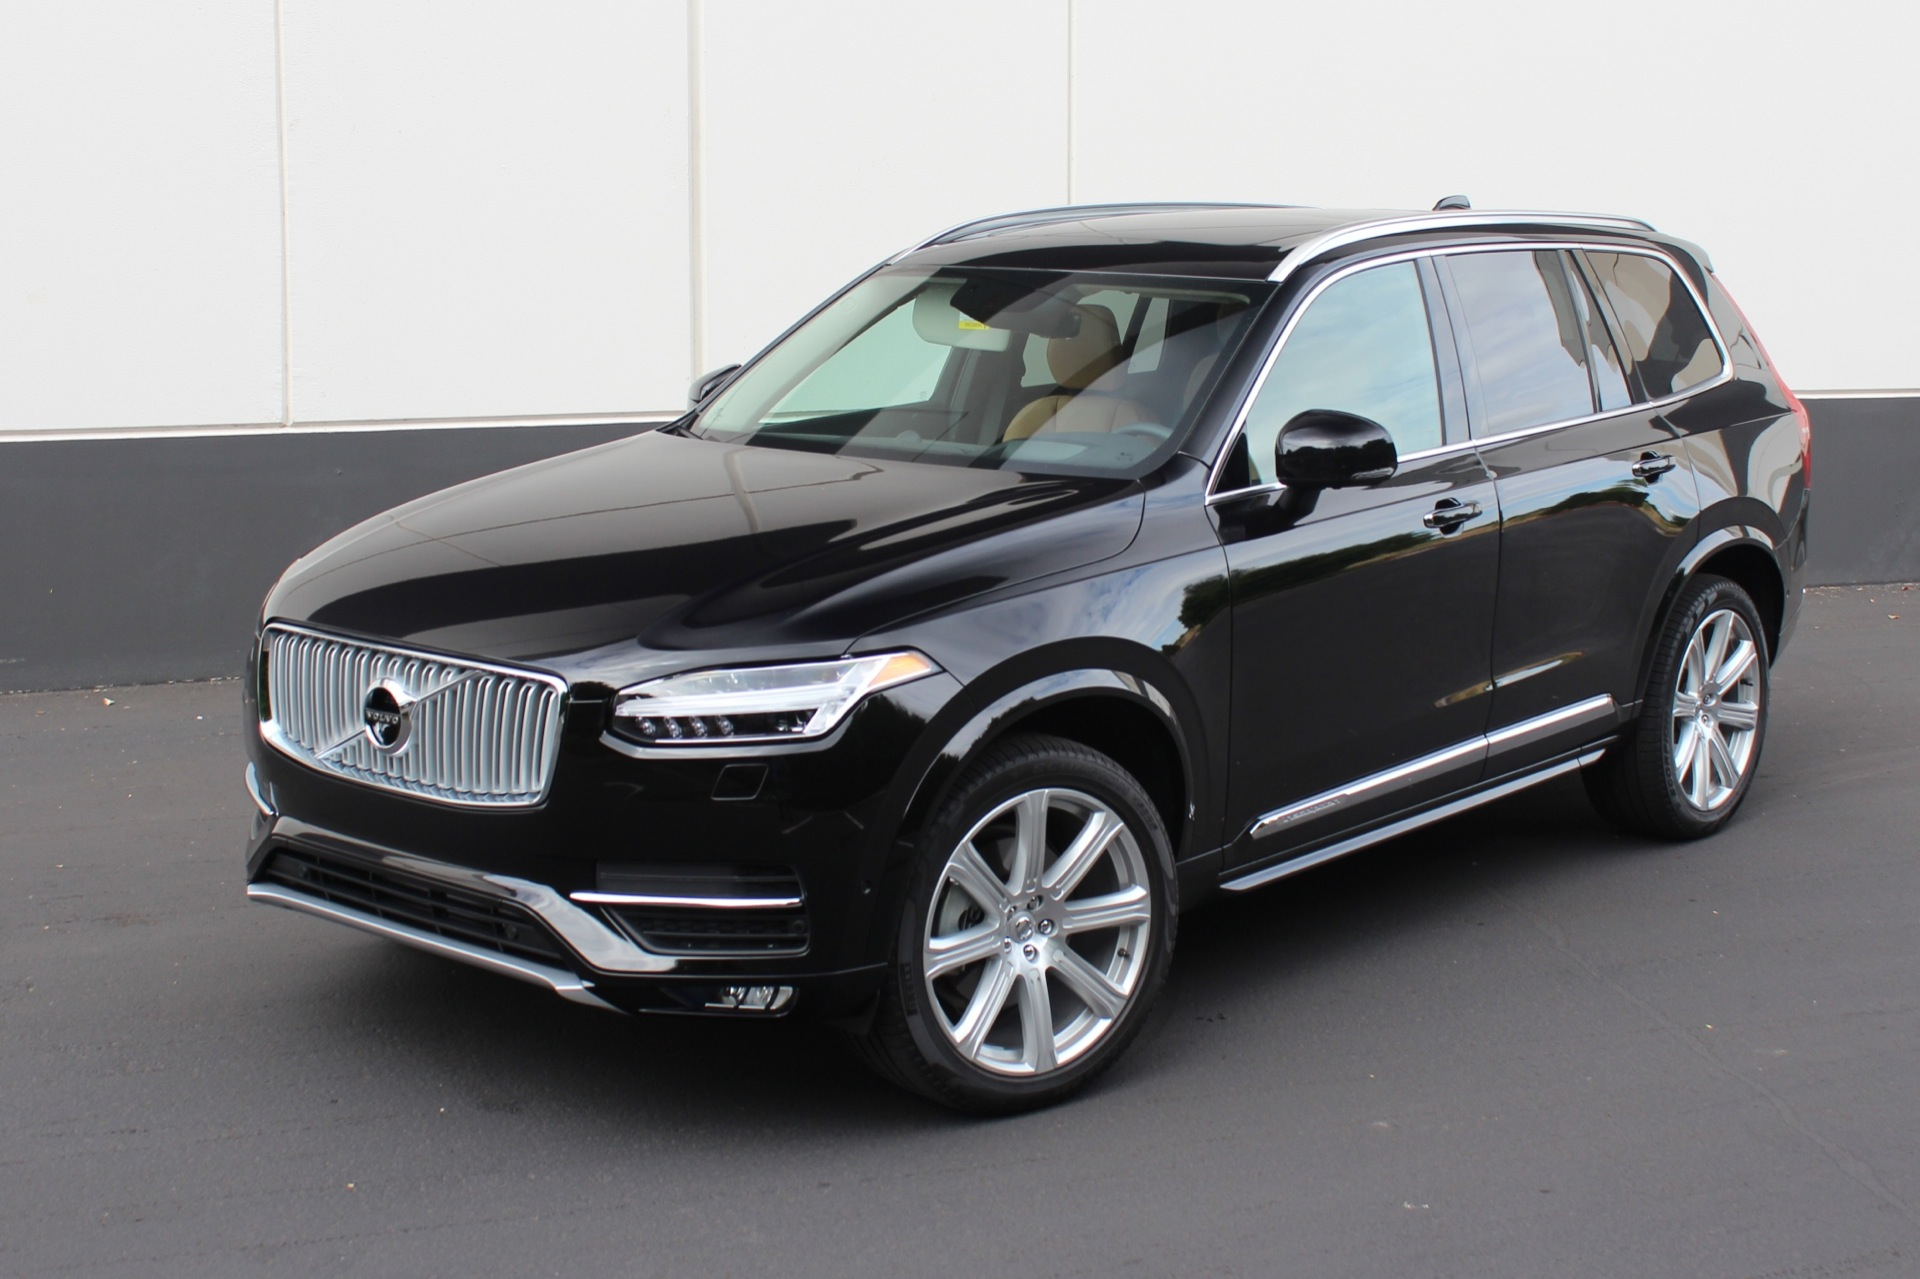 news at just for and top volvo the from speed pric suv today announced will model car prices cars standard start a